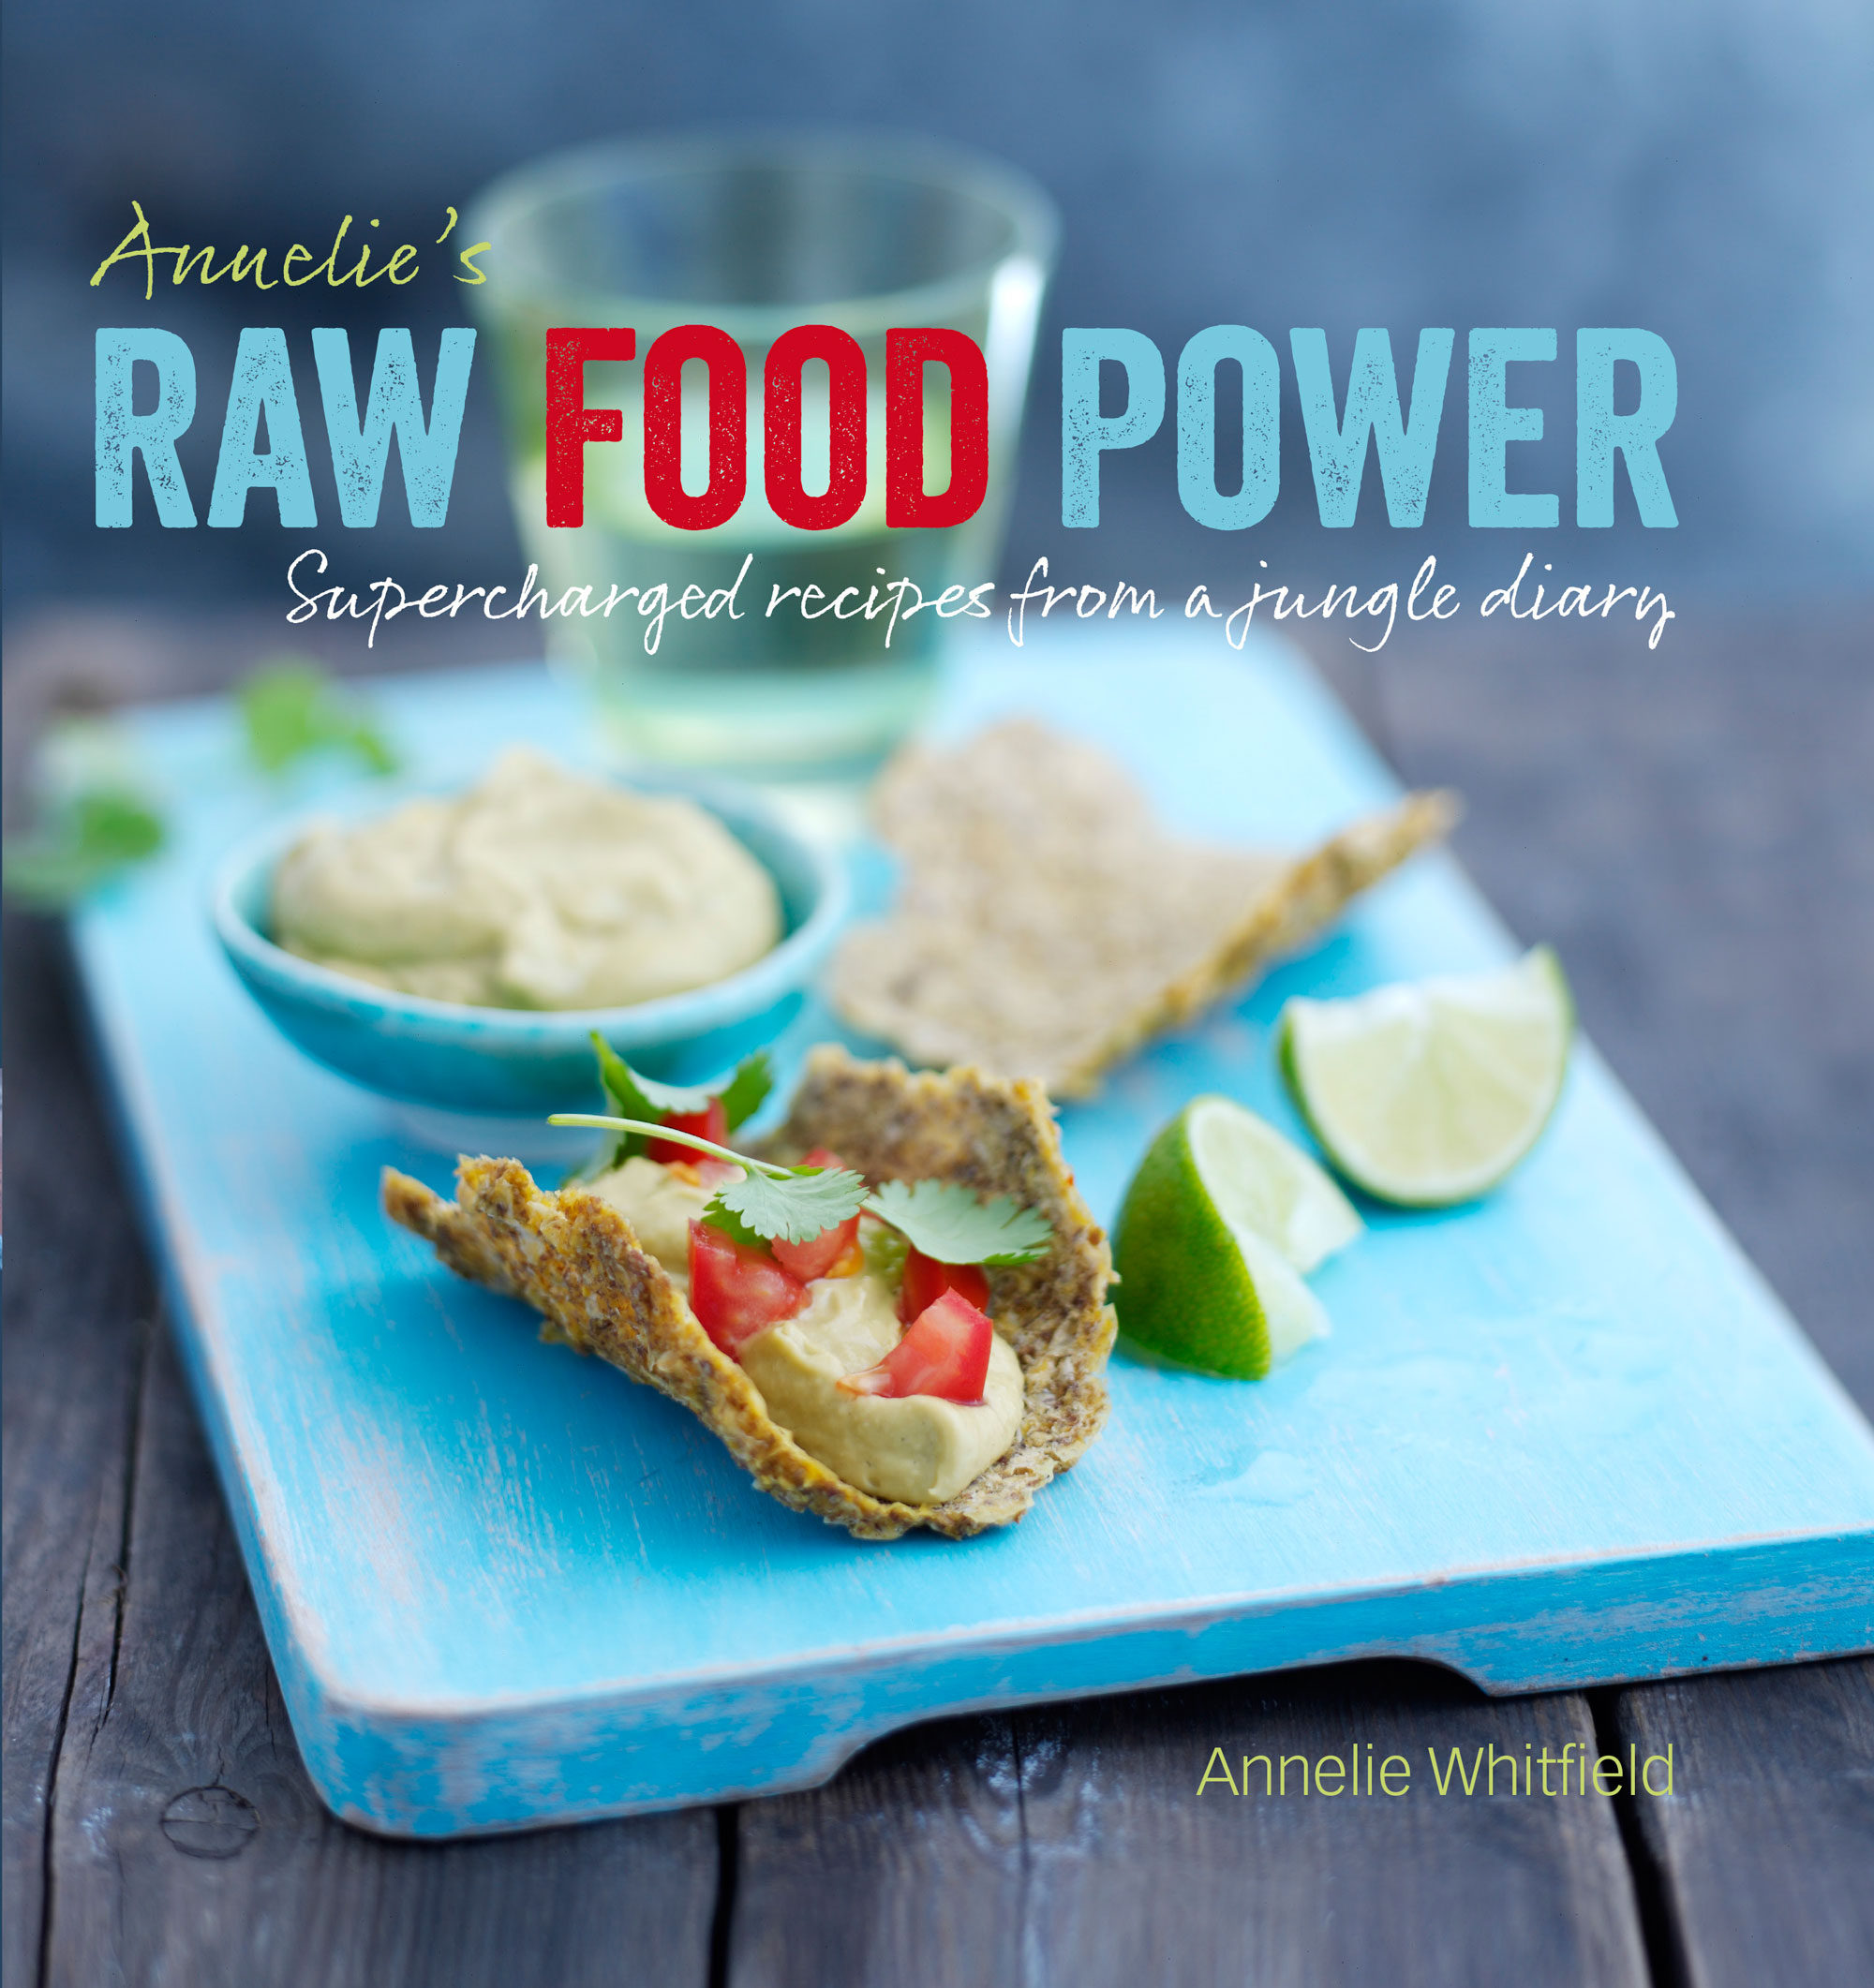 Annelies raw food power ebook annelie whitfield descargar libro annelies raw food power ebook annelie whitfield 9781782400370 forumfinder Image collections